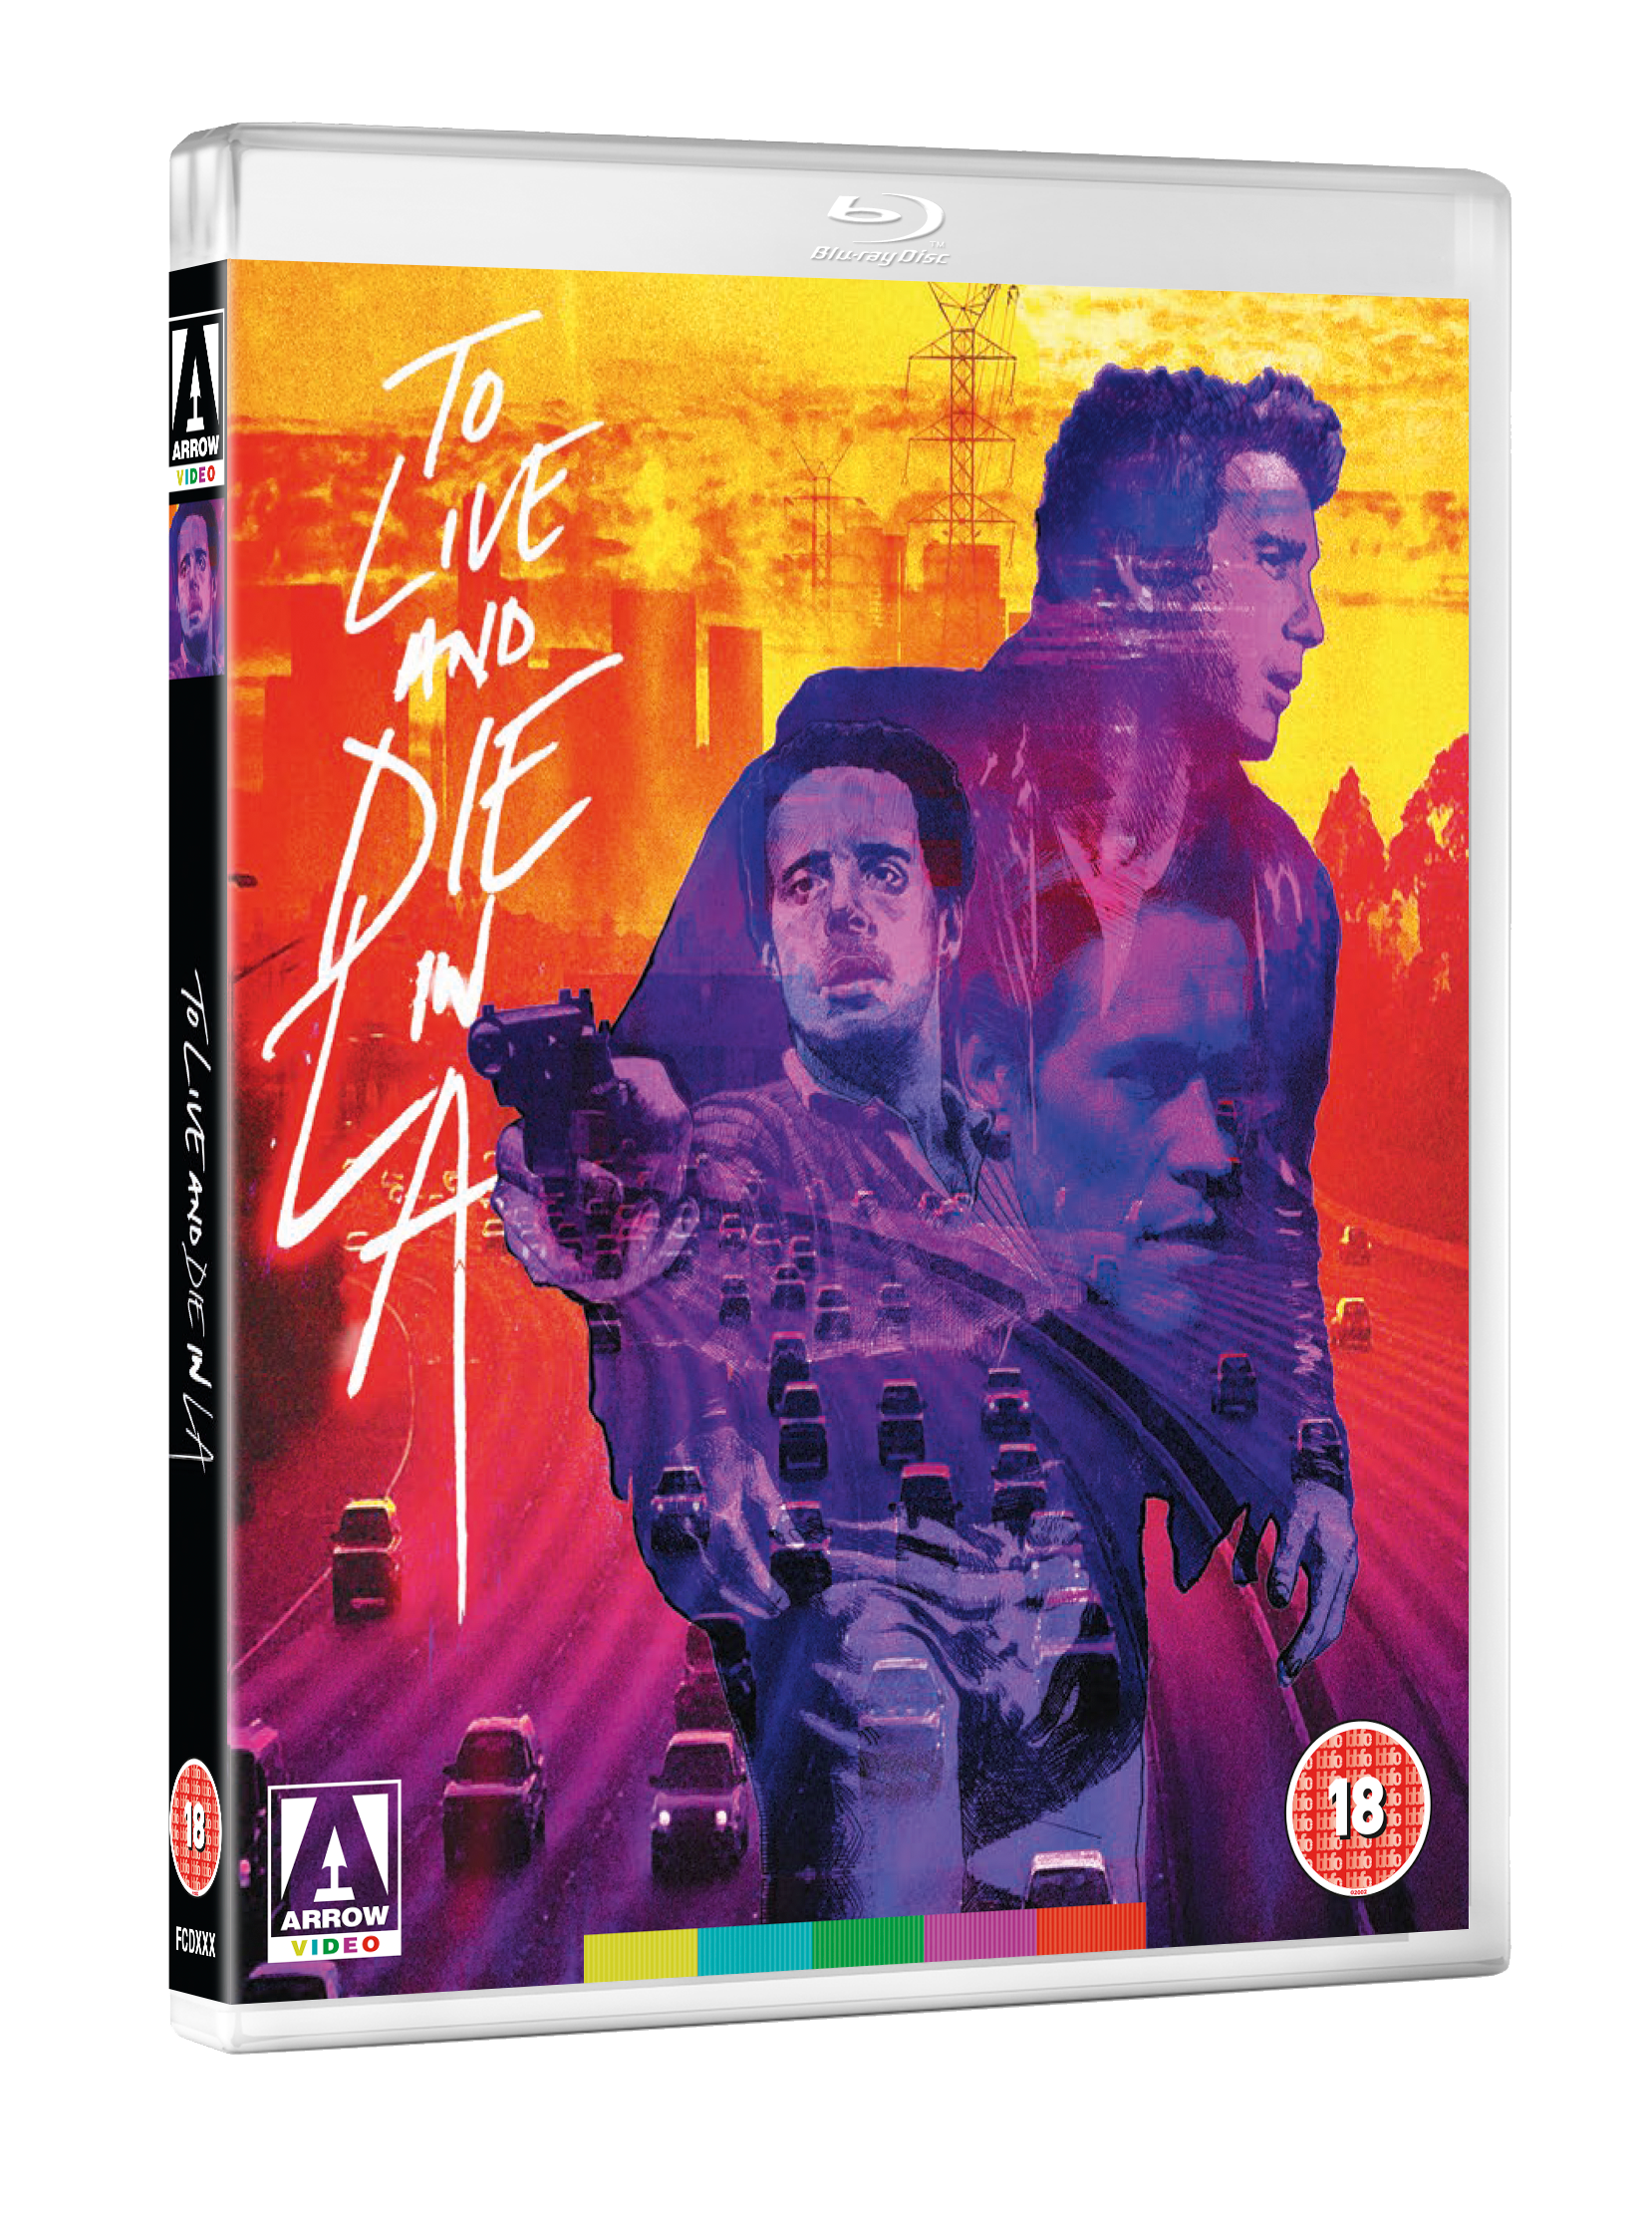 LIVE AND DIE 3D BD Arrow Video announce November releases